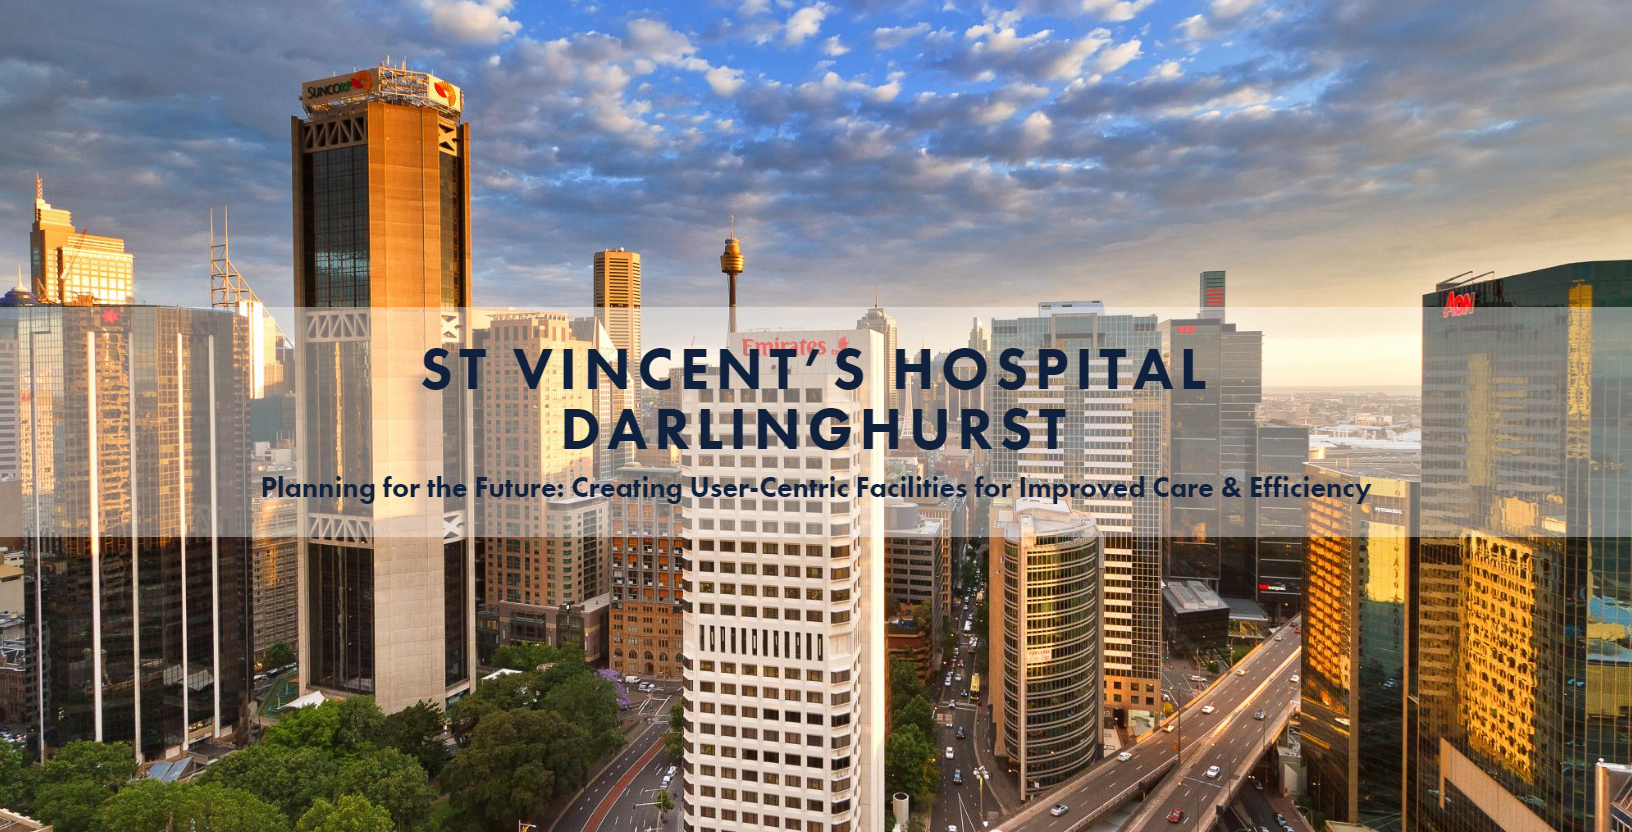 St Vincent's Healthcare: Creating User-Centric Facilities for Improved Care & Efficiency